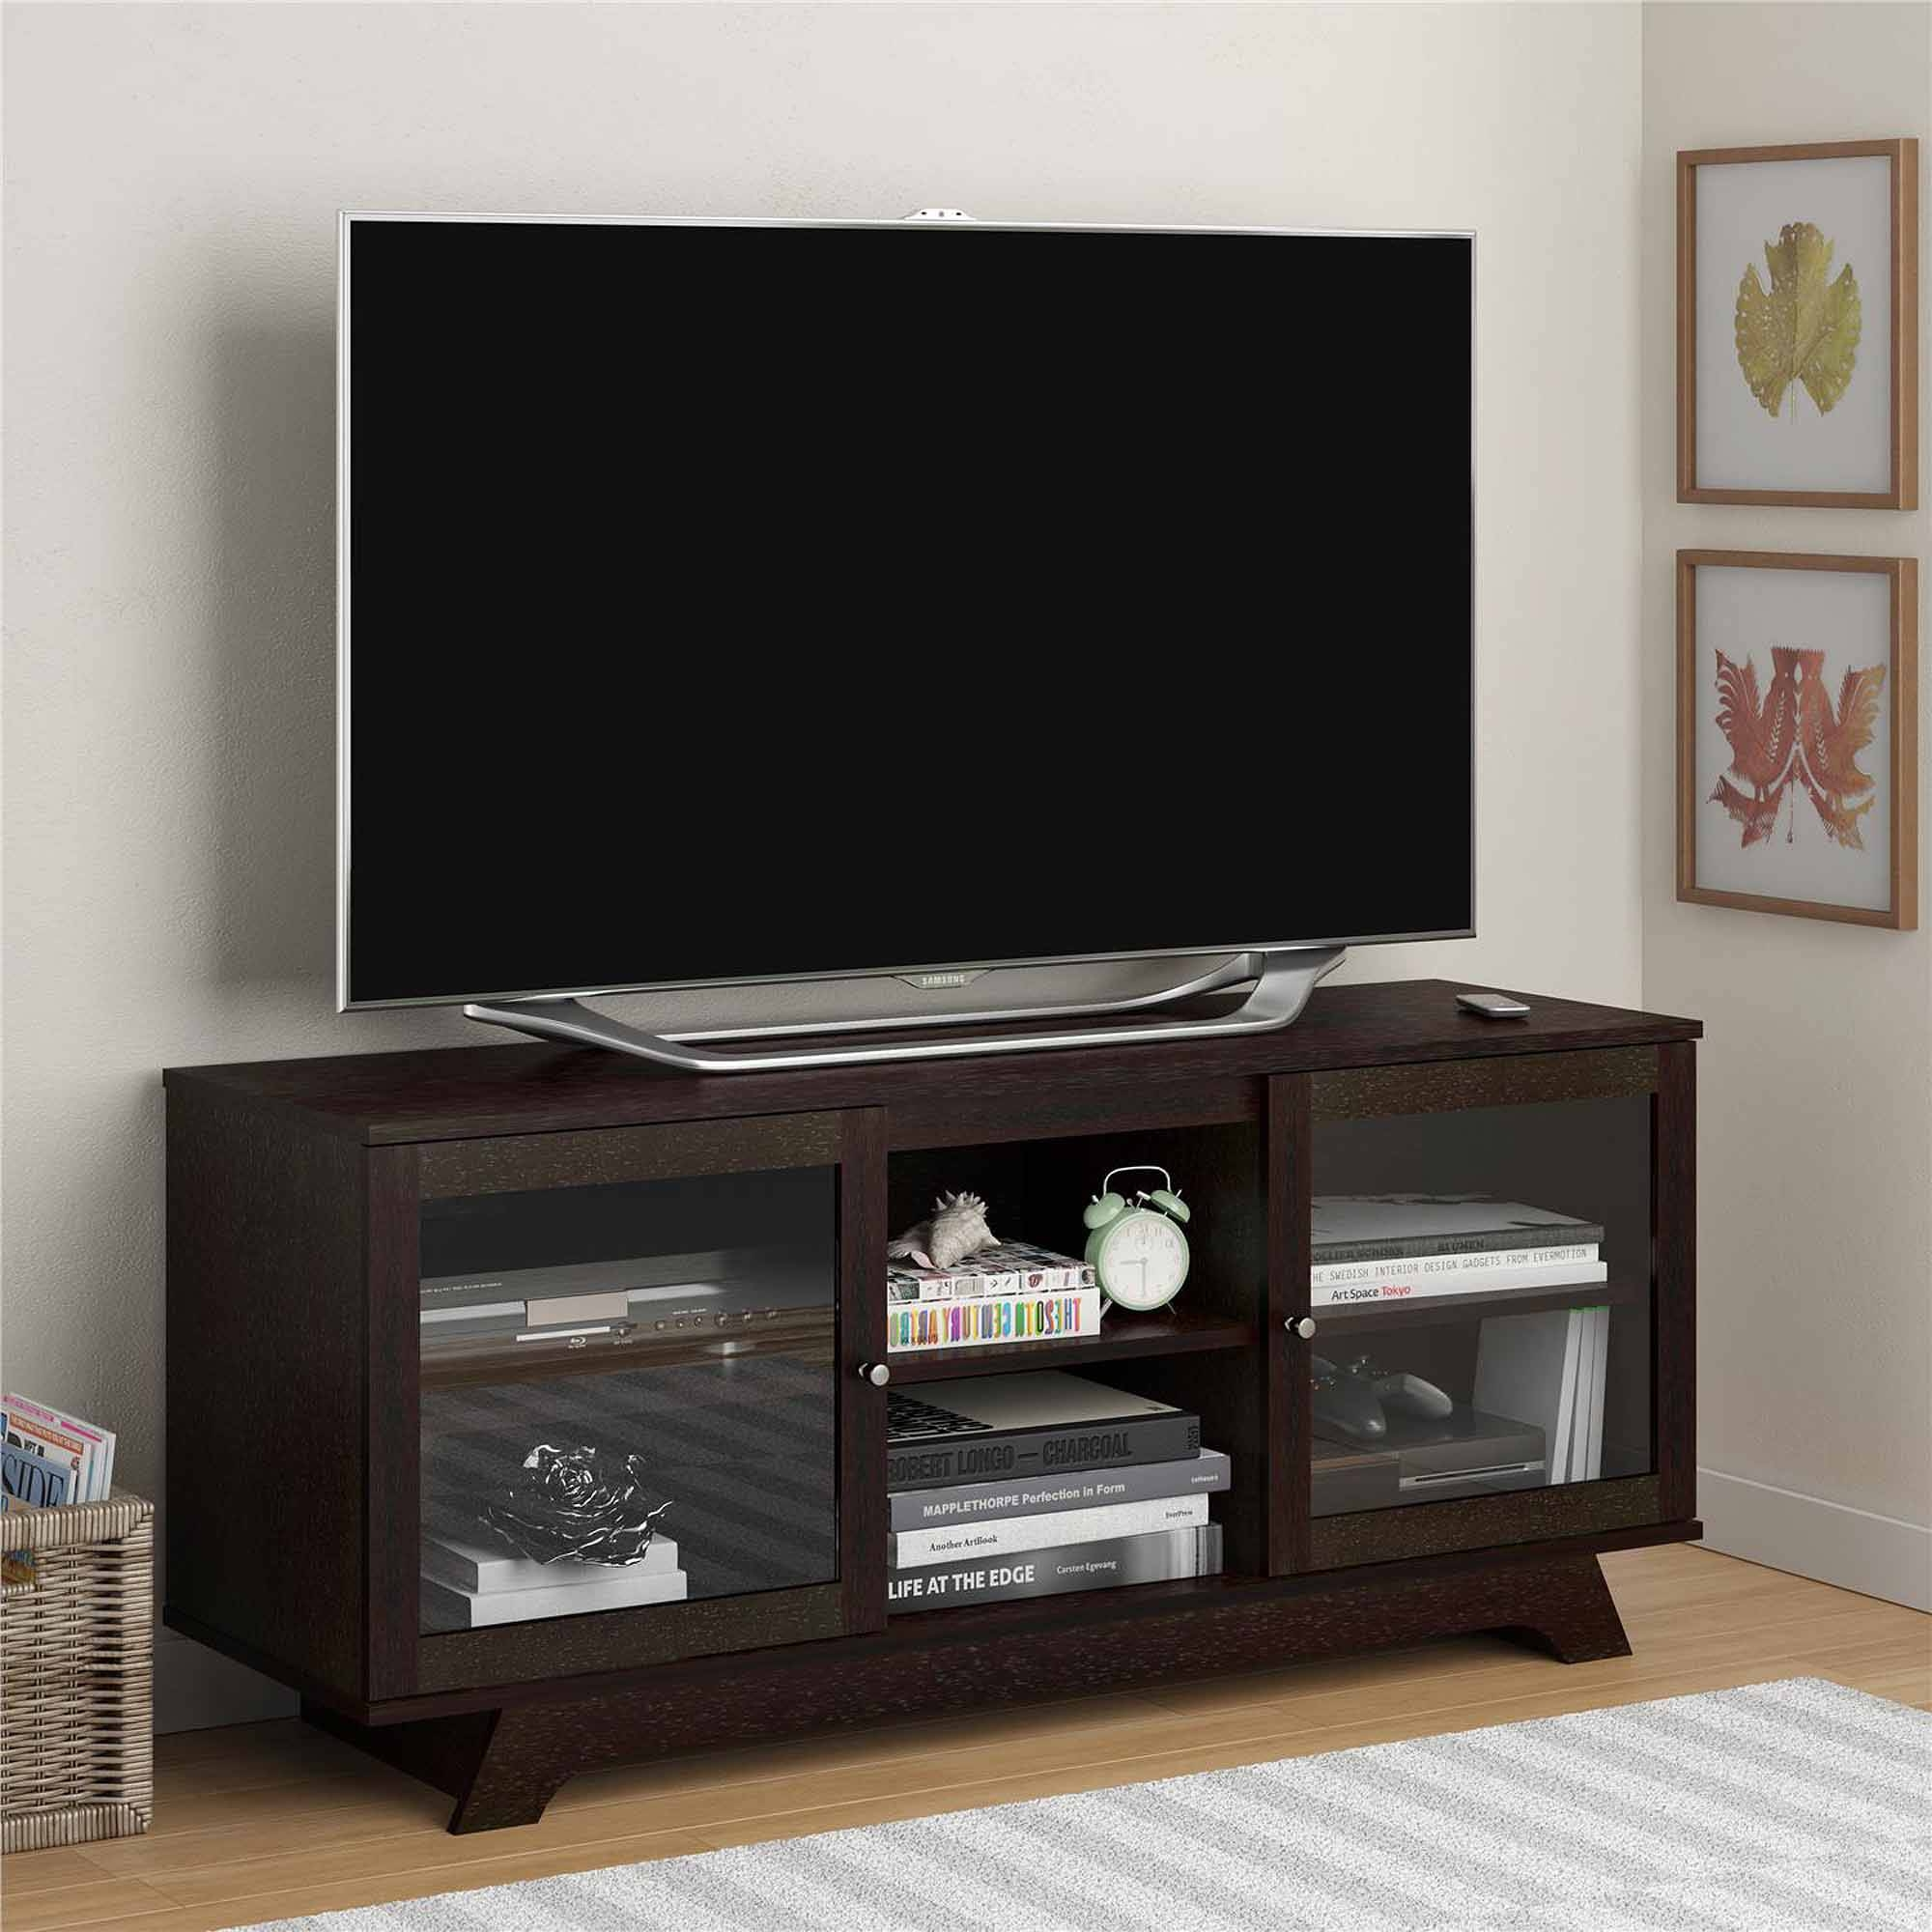 Tv Stands & Entertainment Centers - Walmart intended for Wood Tv Entertainment Stands (Image 13 of 15)